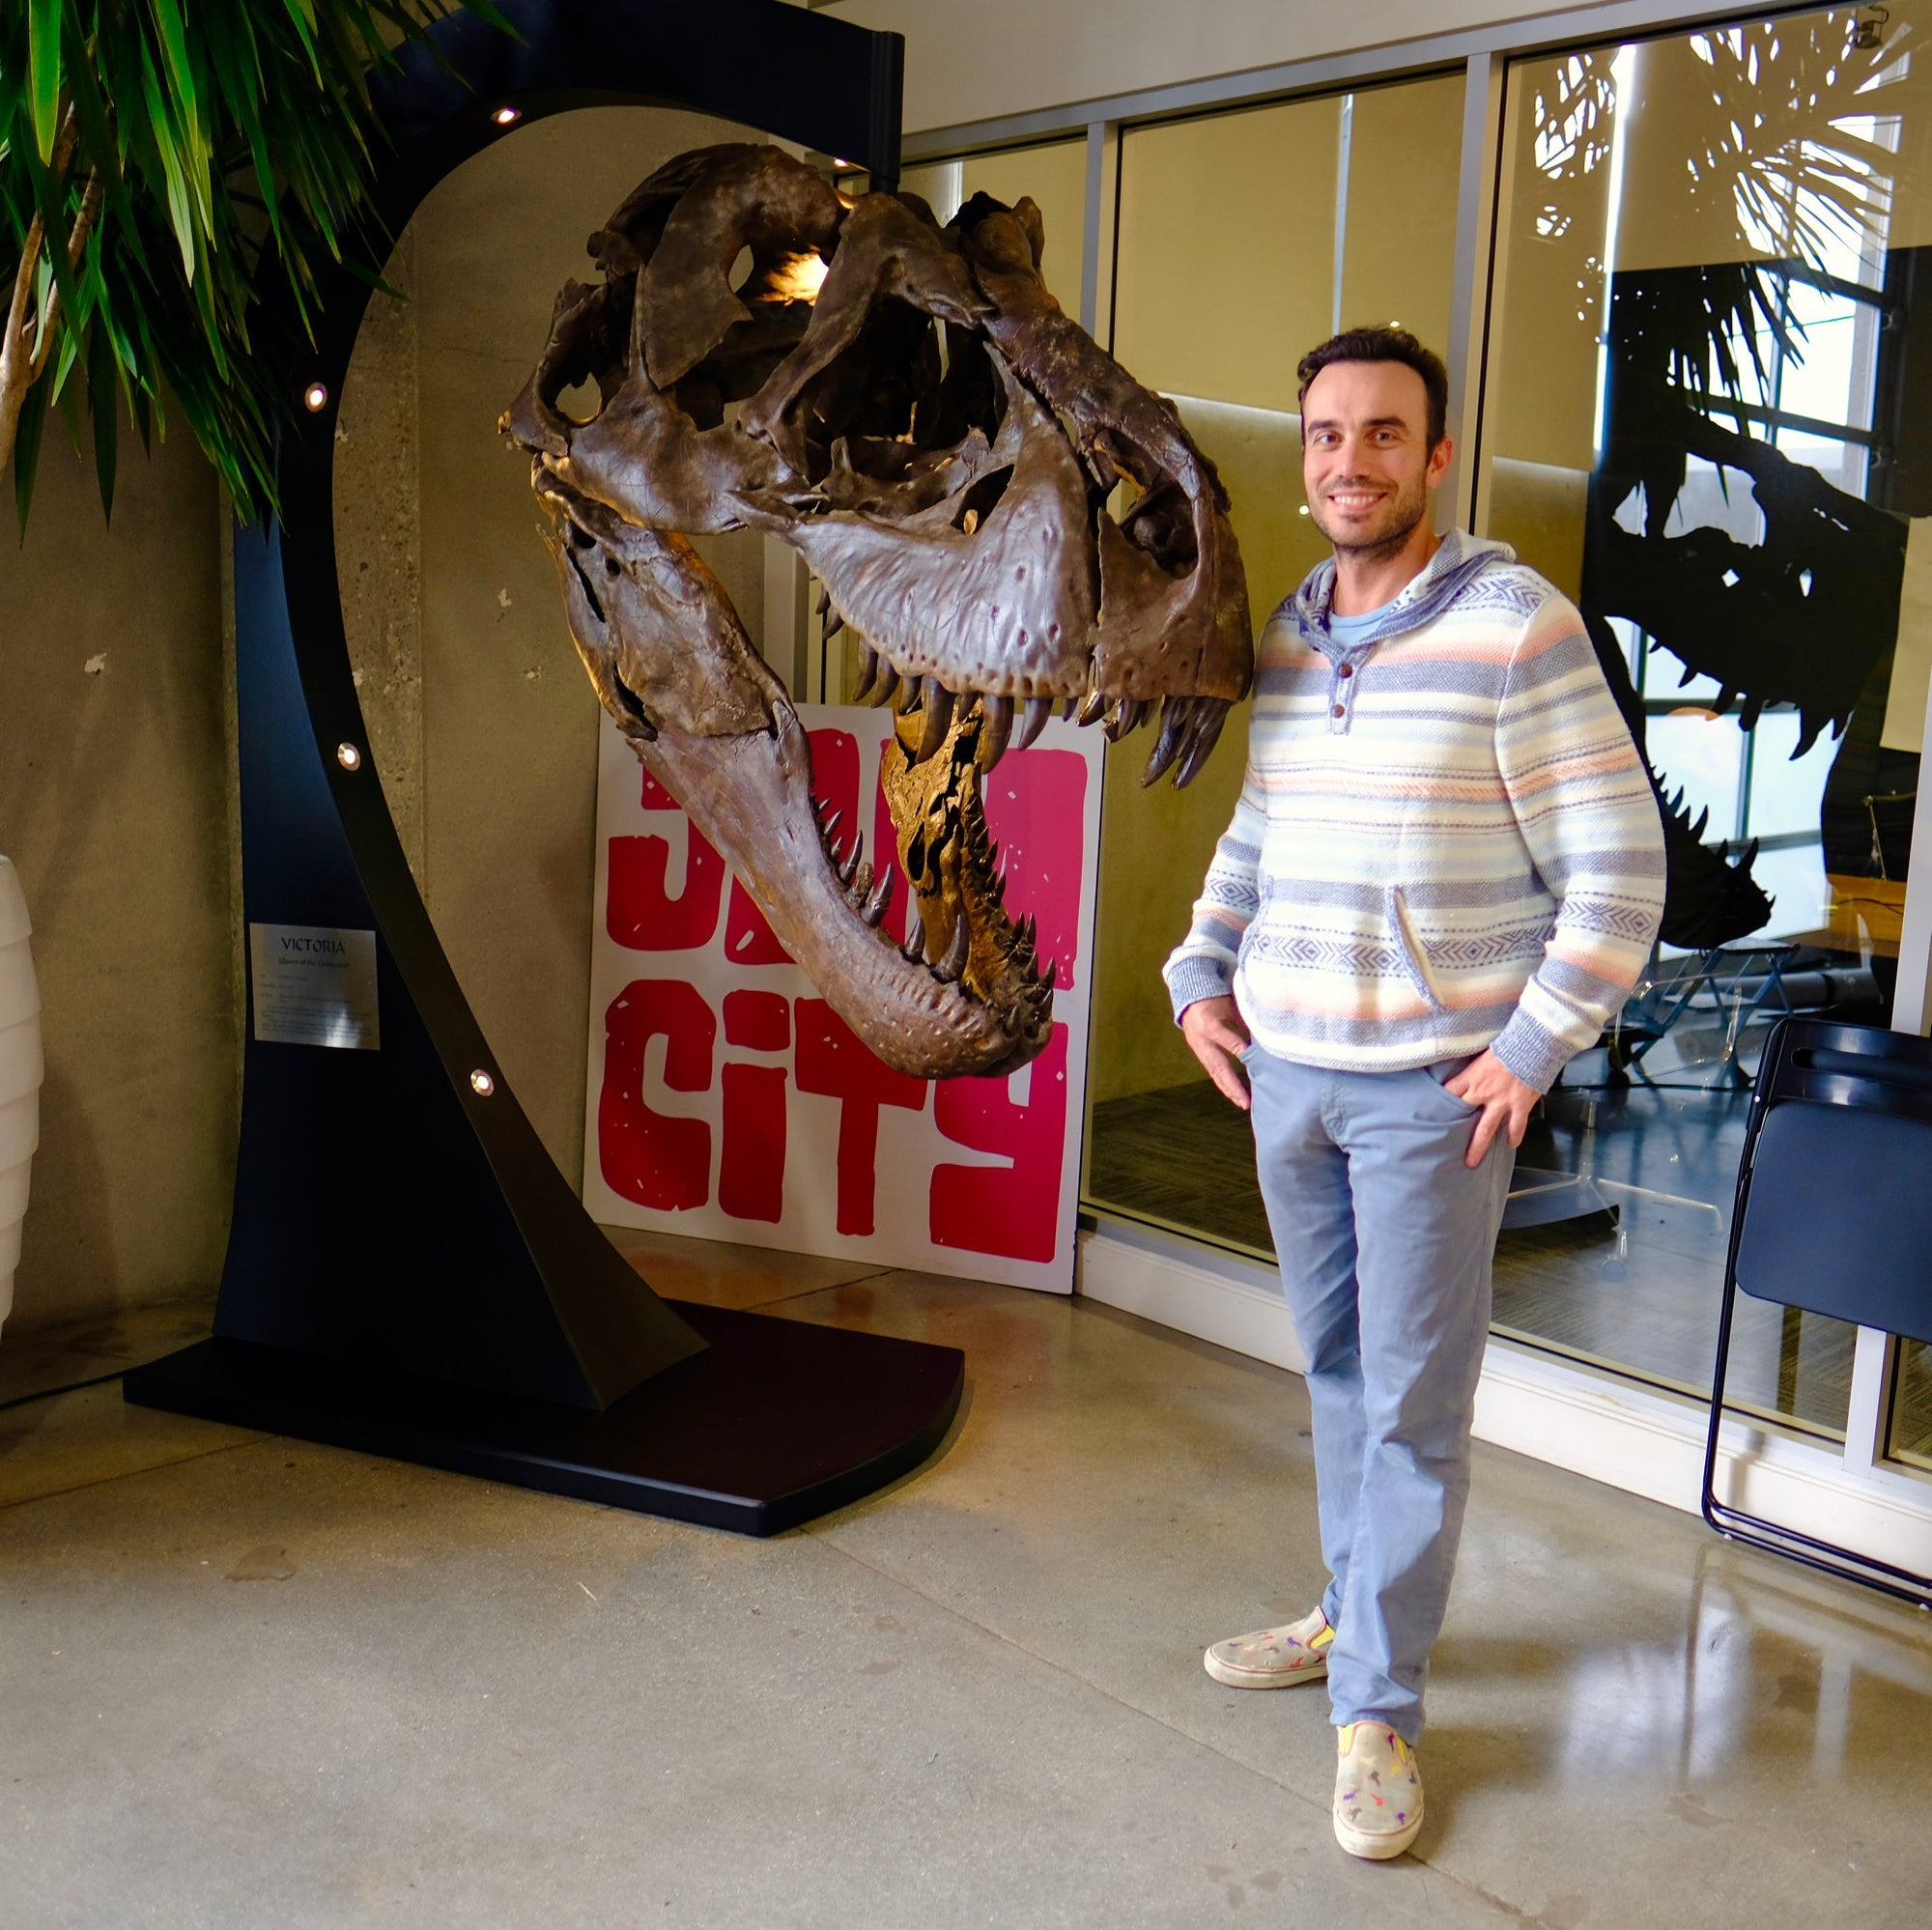 Tyrannosaurus rex - skull cast  One of our guests posing with the first cast of the skull of Victoria, a famous T.rex. The skull was 3D printed from original scans taken by the world expert in digitizing dinosaur bones.